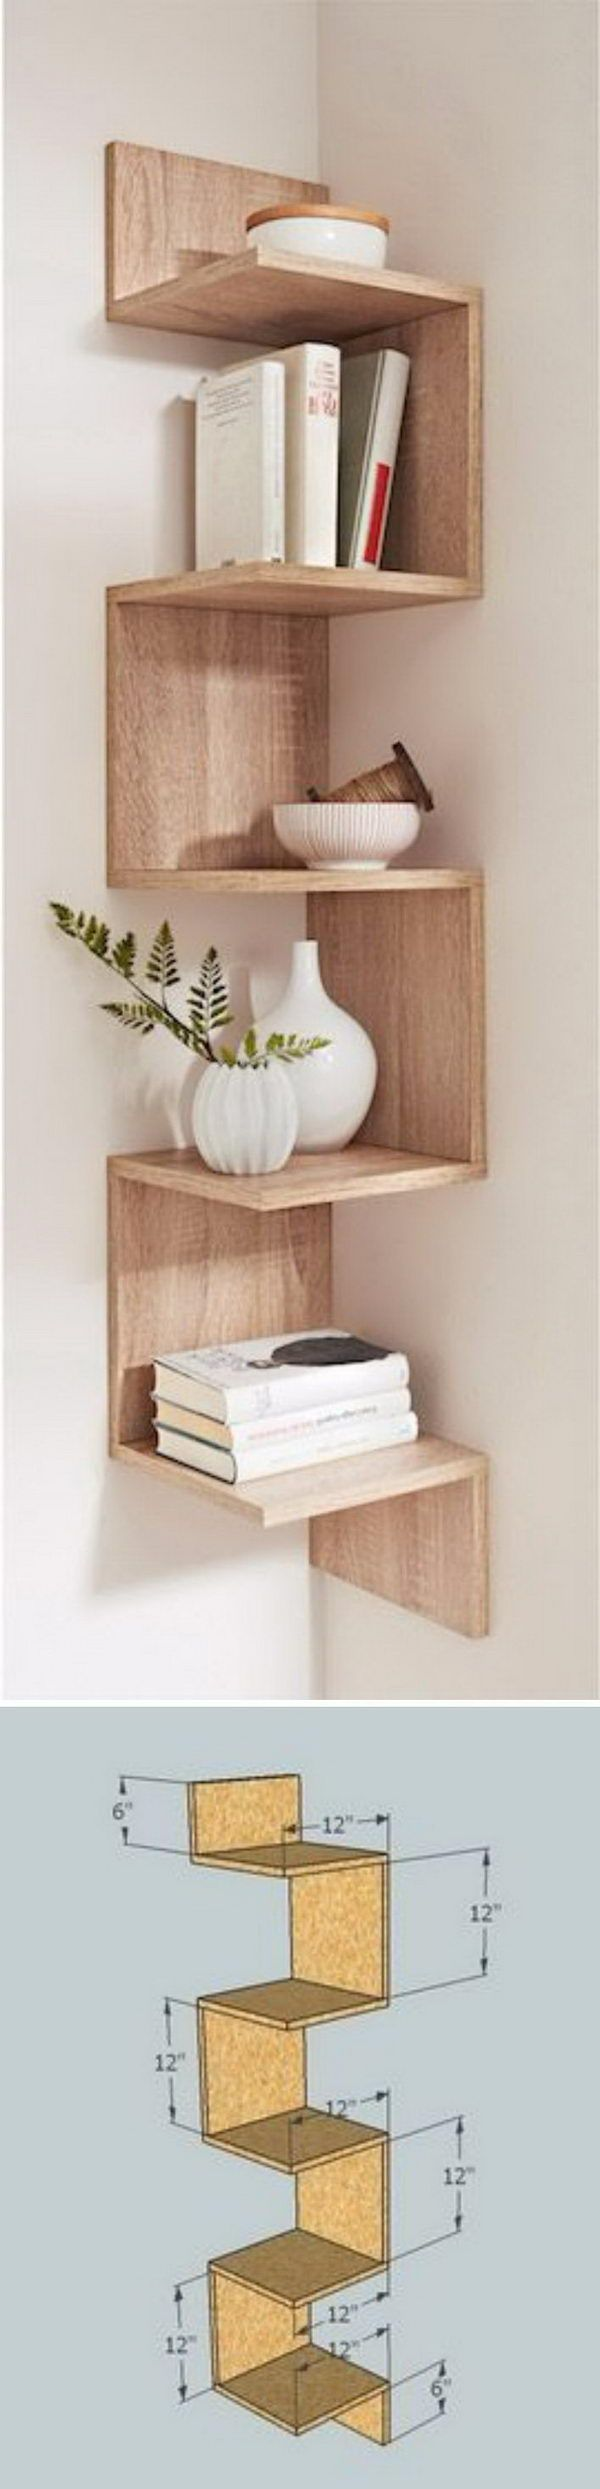 20+ diy corner shelves to beautify your awkward corner | corner